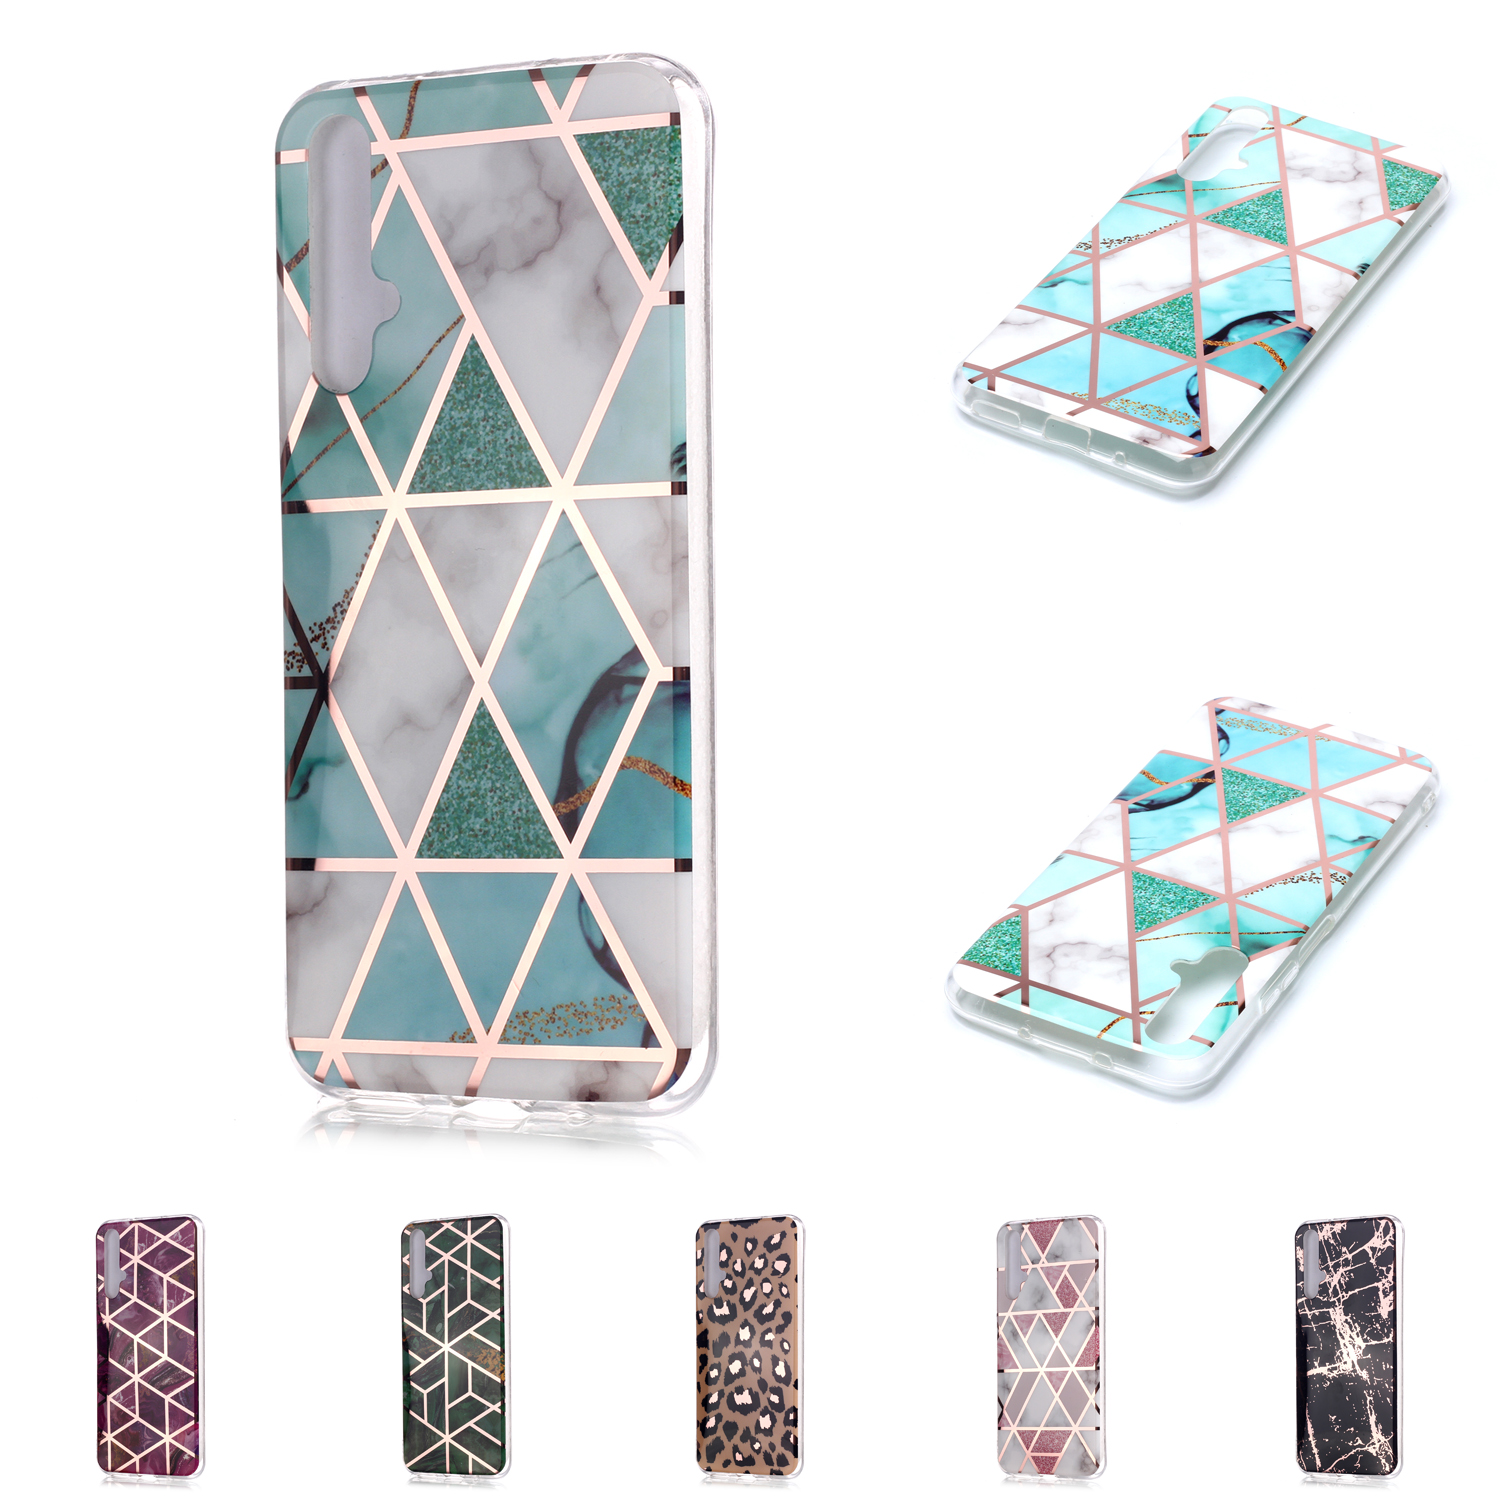 Cell Phone Covers Cases For <font><b>Capinha</b></font> <font><b>Samsung</b></font> Galaxy Rose Gold Soft TPU A20E Csse Coffee Galaxie <font><b>A30</b></font> Hoesje A20 Protective A20S image